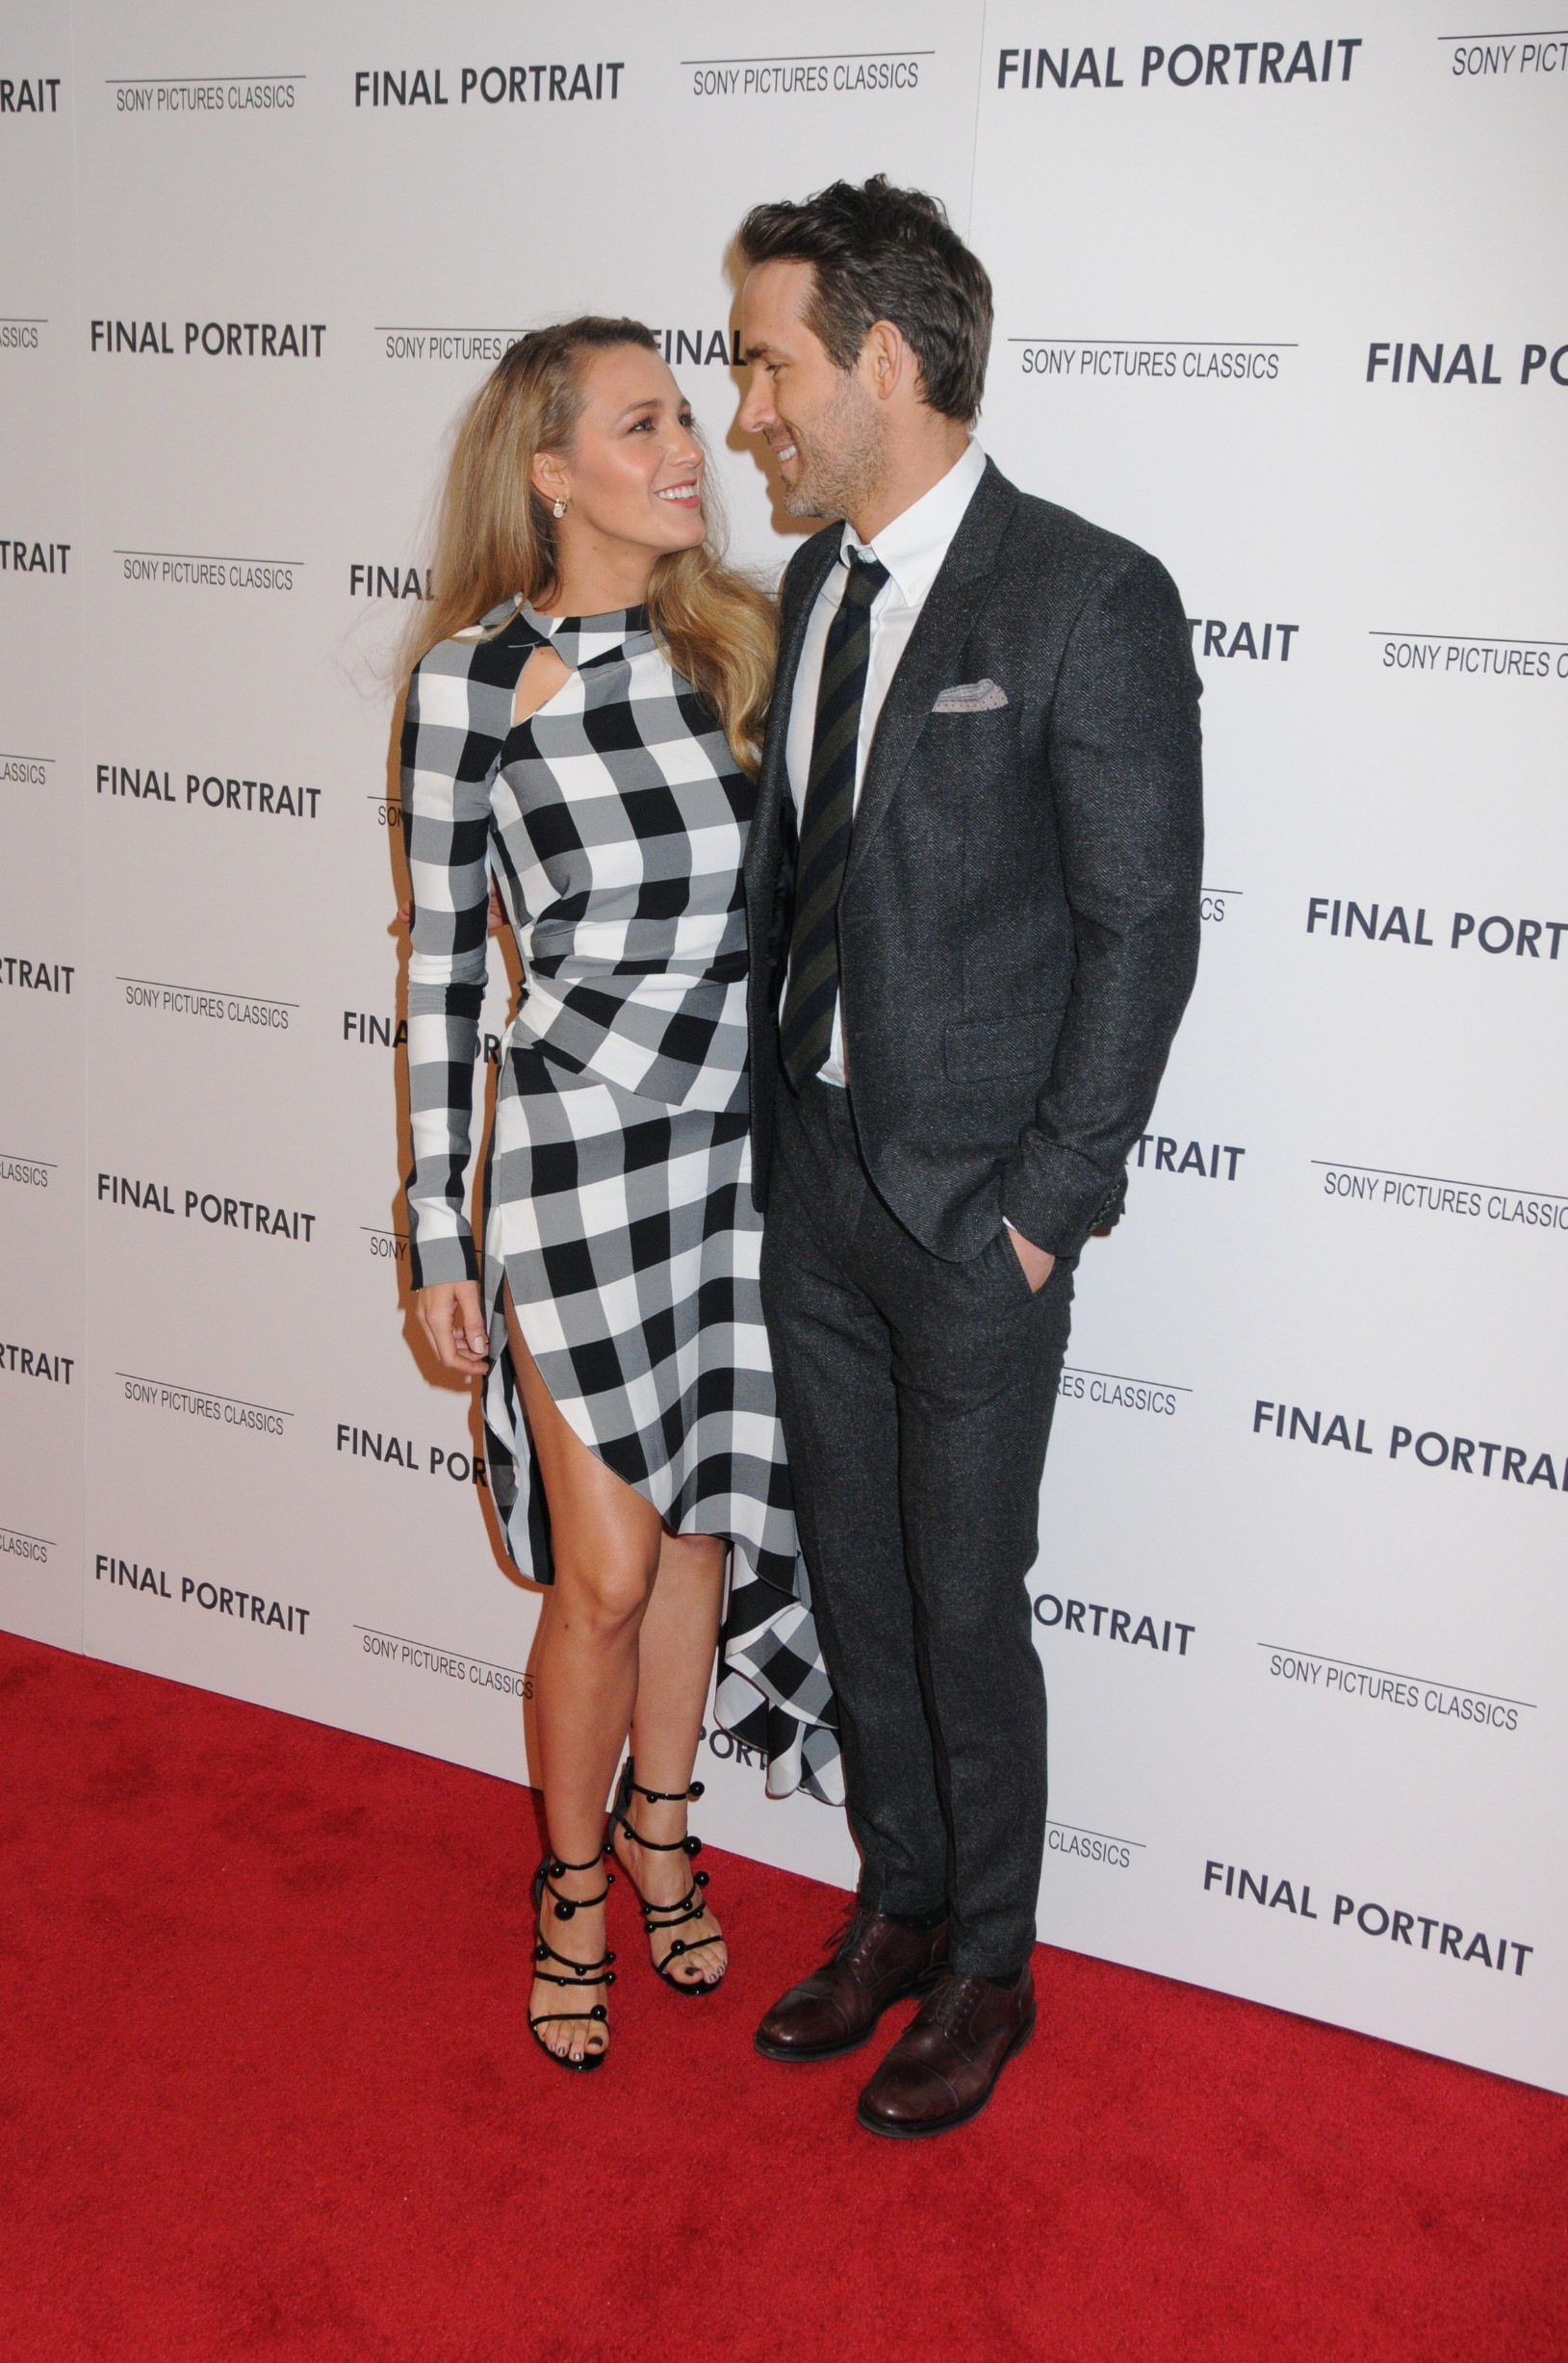 Blake Lively and Ryan Reynolds A Special Screening of Final Portrait Hosted by Sony Pictures Classics, Solomon R. Guggenheim Museum Dominique Levy and Brett Gorvy, New York, USA - 22 Mar 2018,Image: 366706444, License: Rights-managed, Restrictions: , Model Release: no, Credit line: SilverHub / Shutterstock Editorial / Profimedia